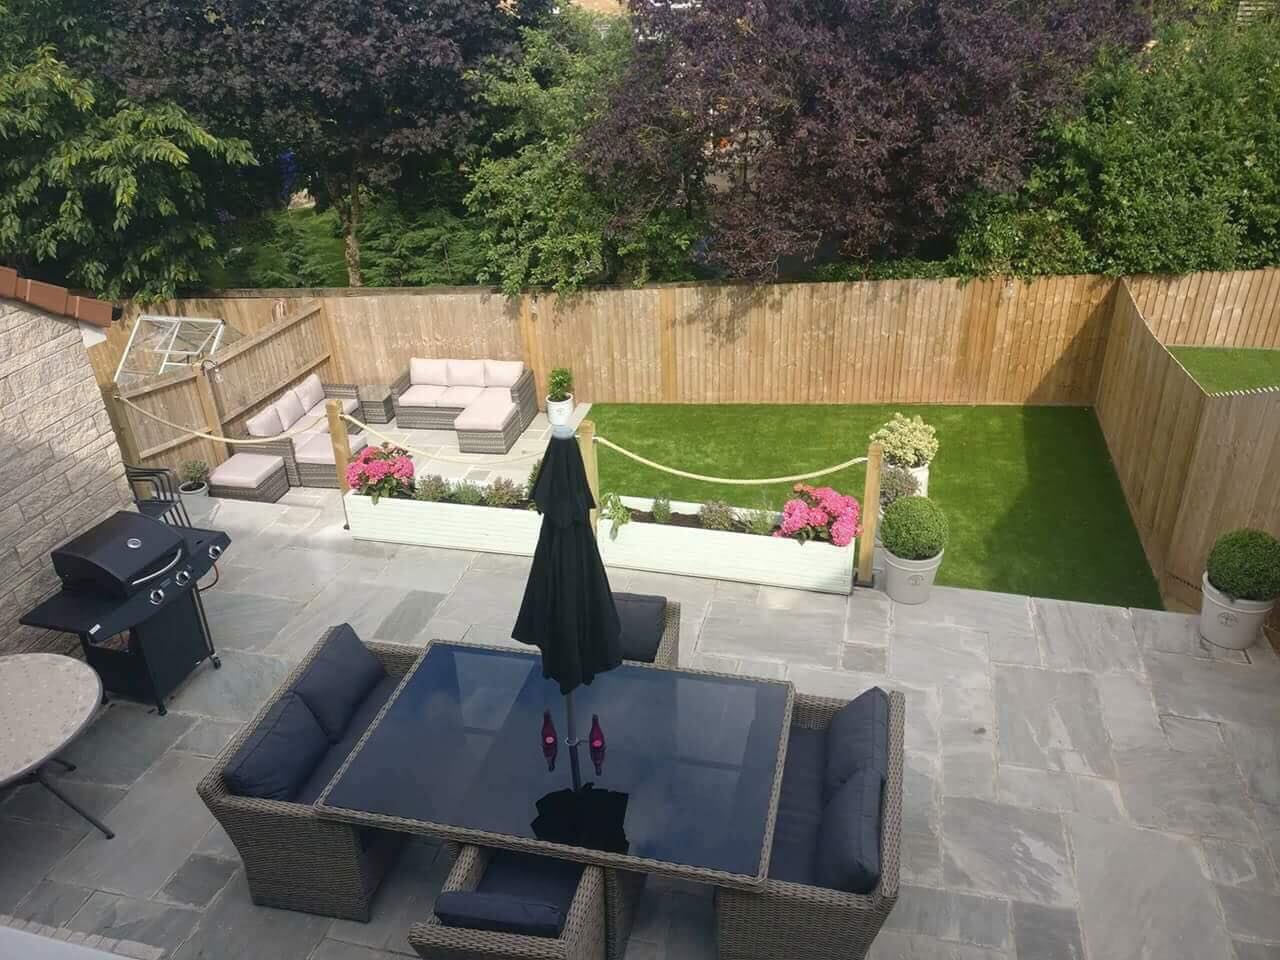 landscaped garden with new lawn and patio